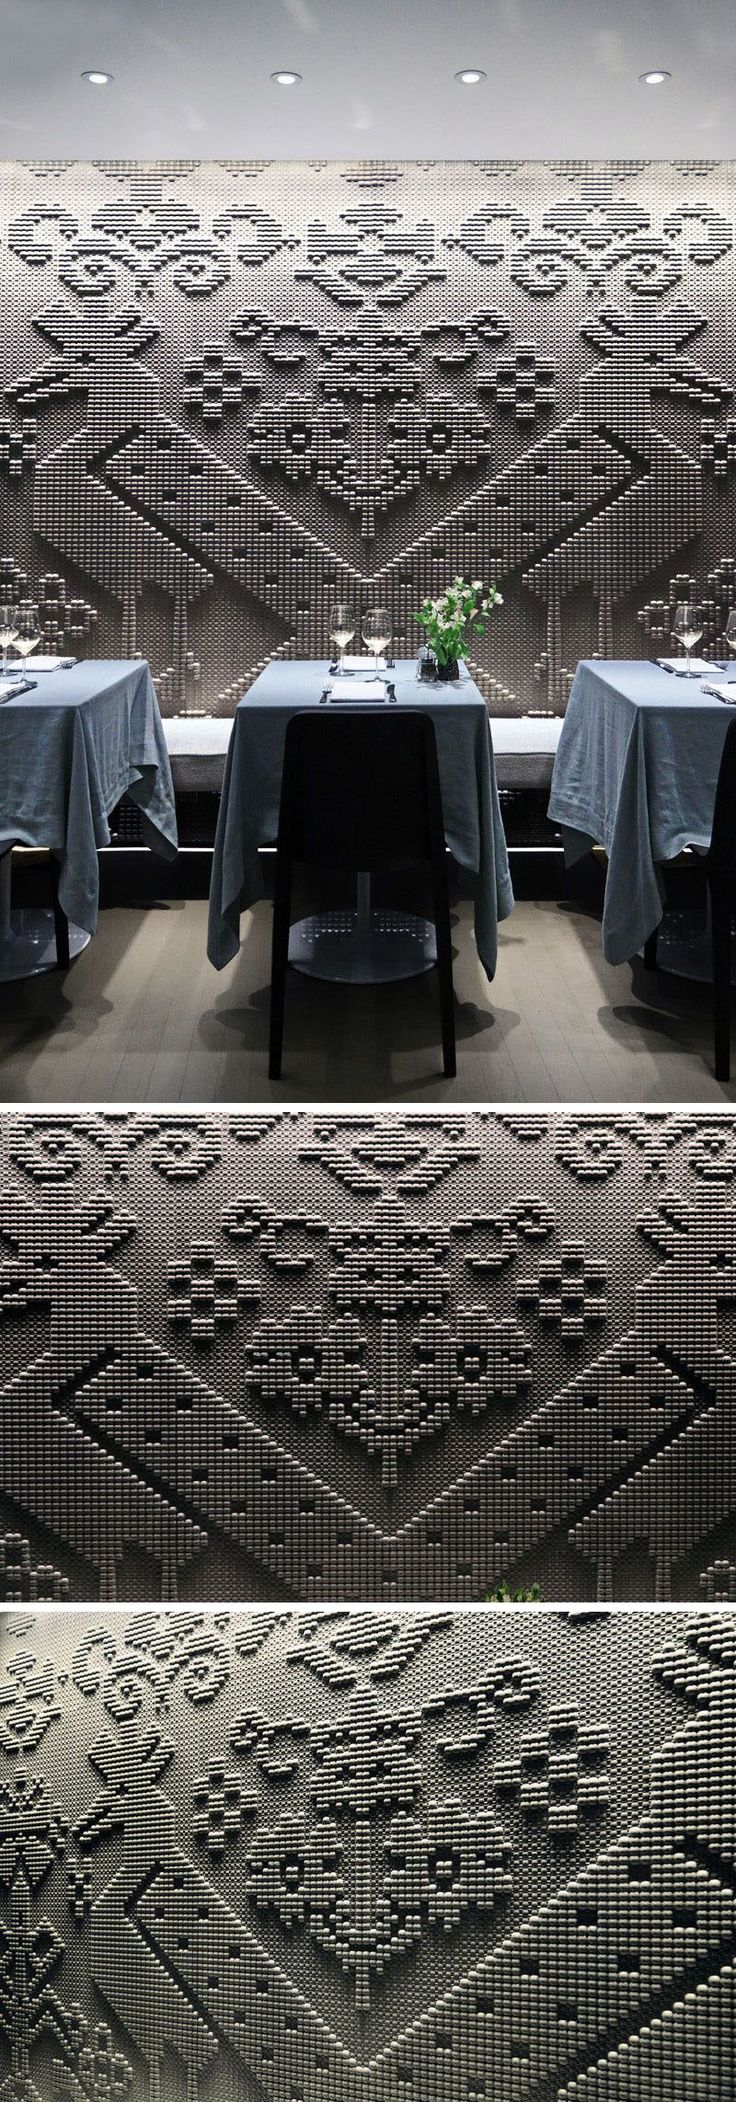 Restaurants always need a luxurious furniture. Discover more luxurious interior design details at luxxu.net